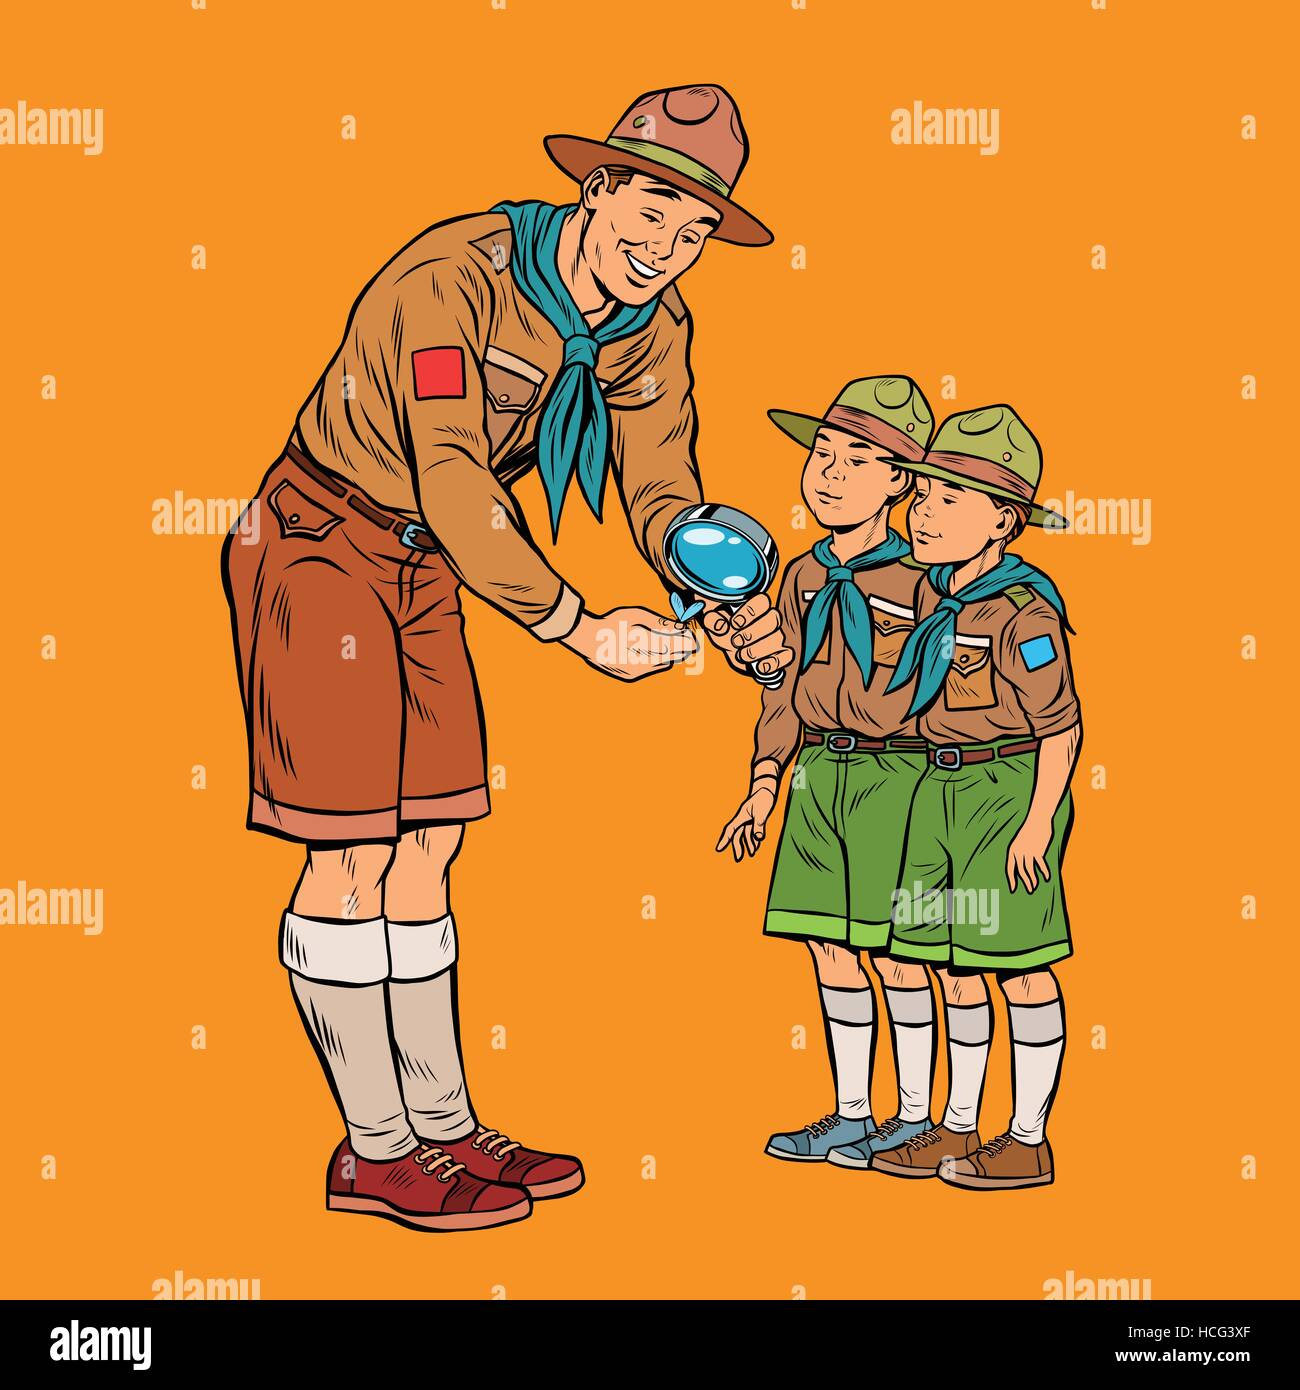 scoutmaster shows little insect to young scouts - Stock Vector